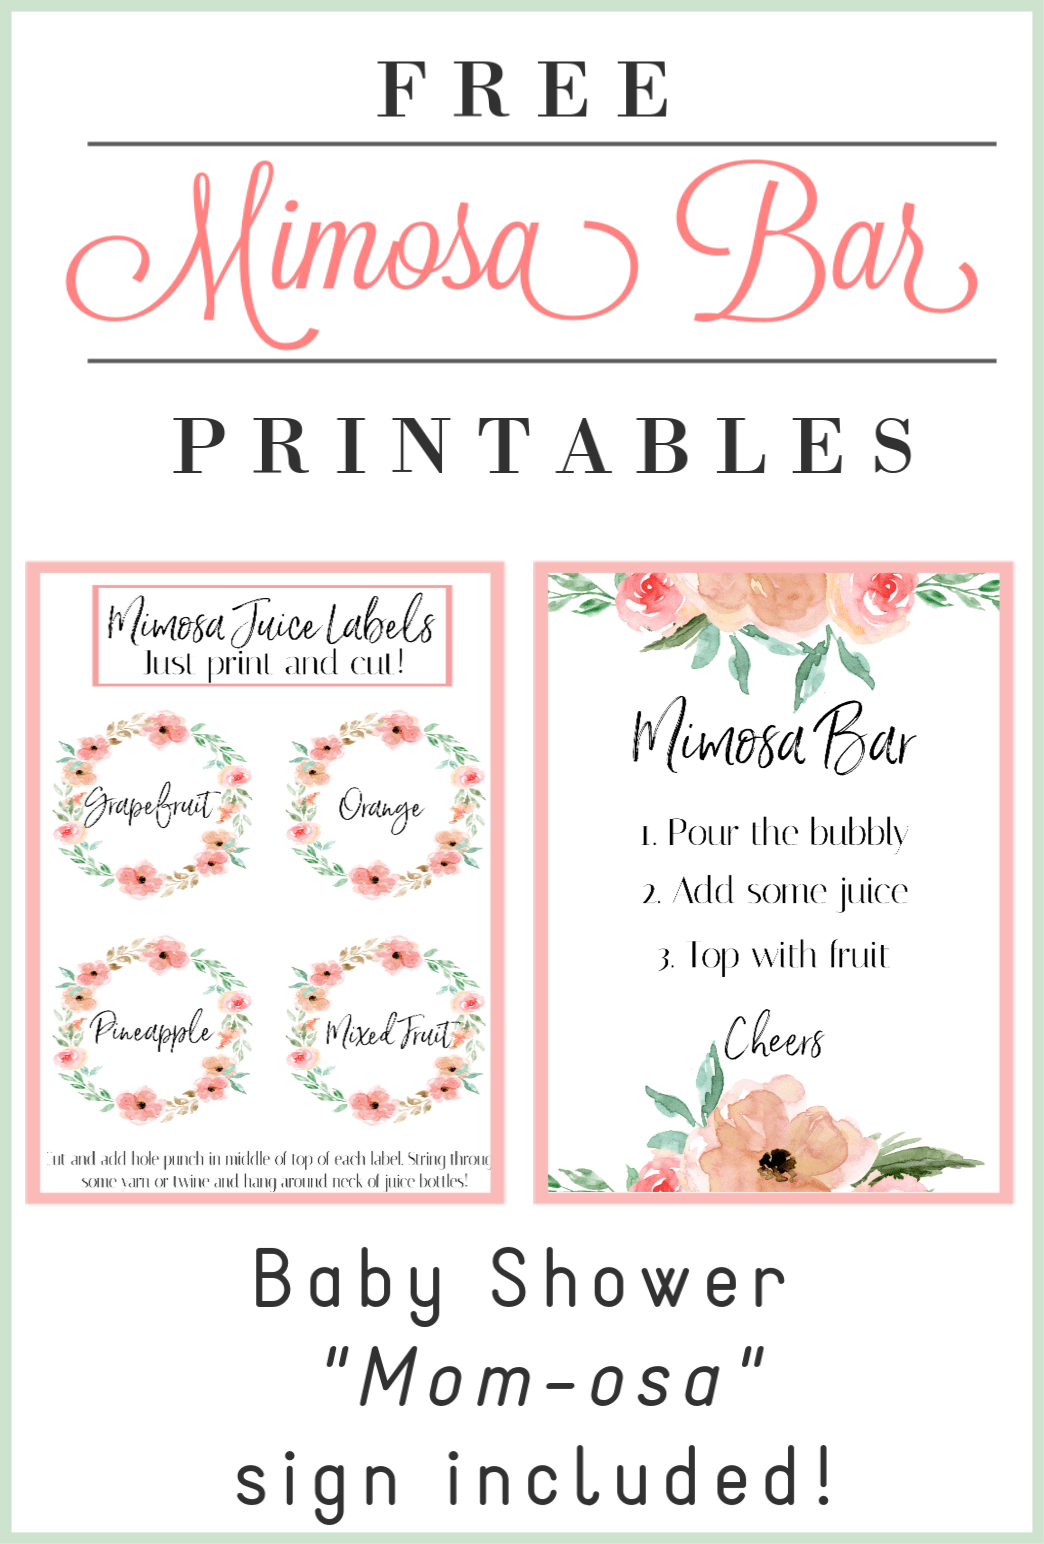 photo regarding Mimosa Bar Sign Printable referred to as Do-it-yourself: Mimosa Bar with Free of charge Printables! - Alysea Vega